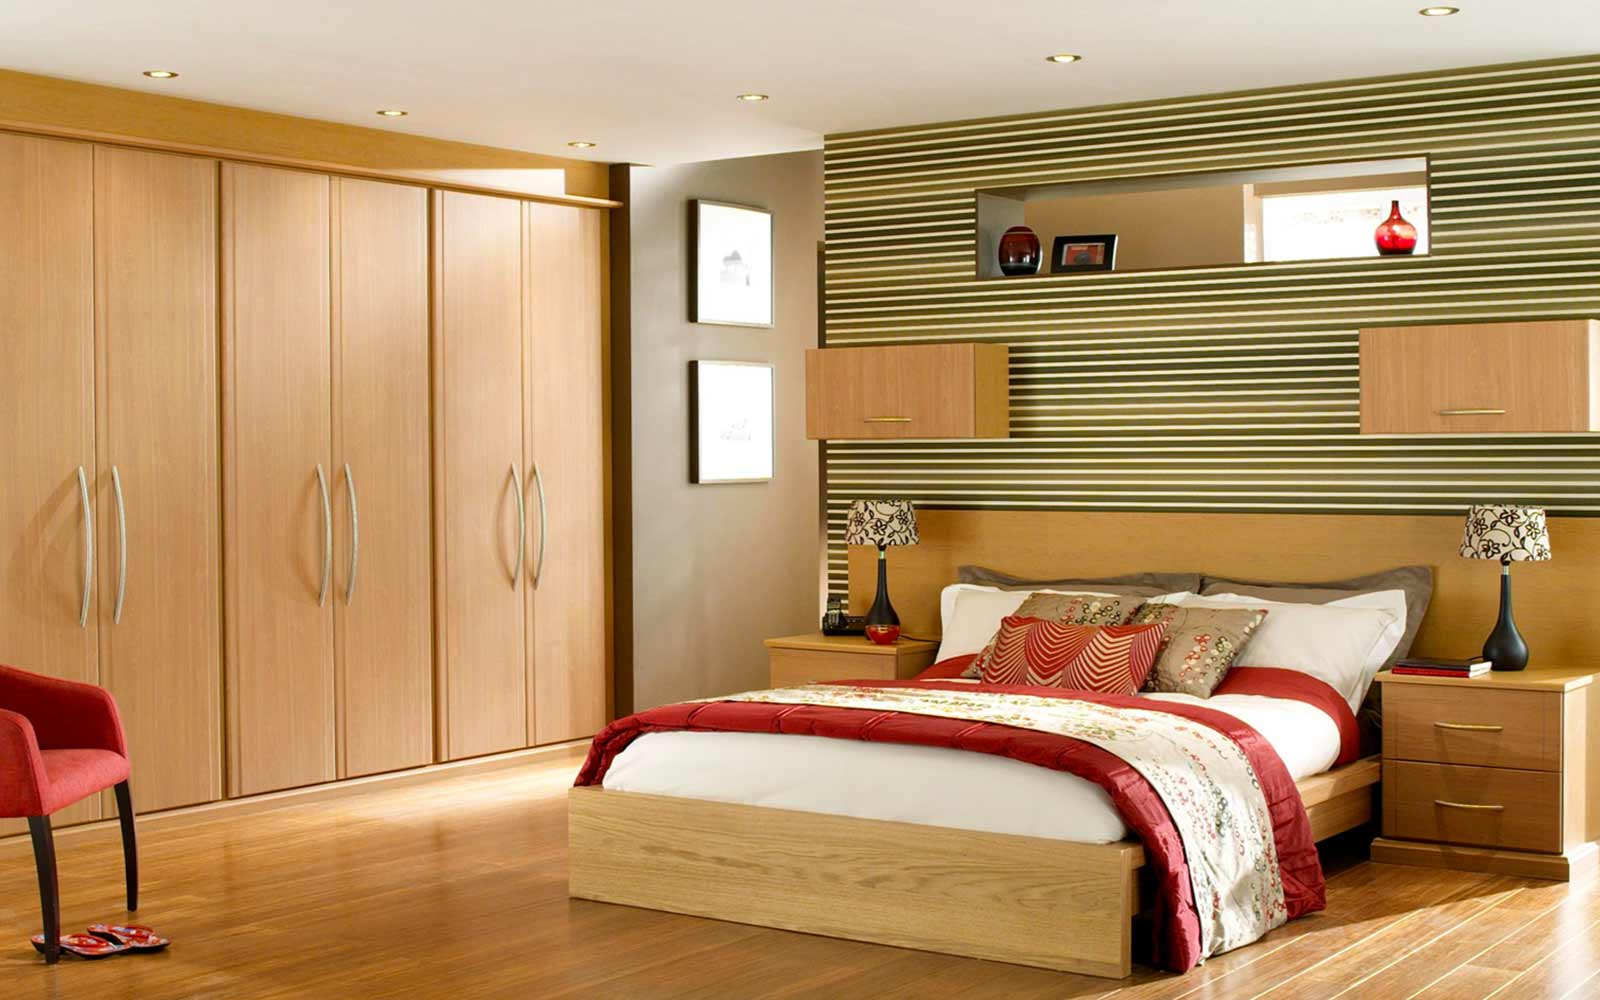 35 images of wardrobe designs for bedrooms - Design for bedroom pics ...